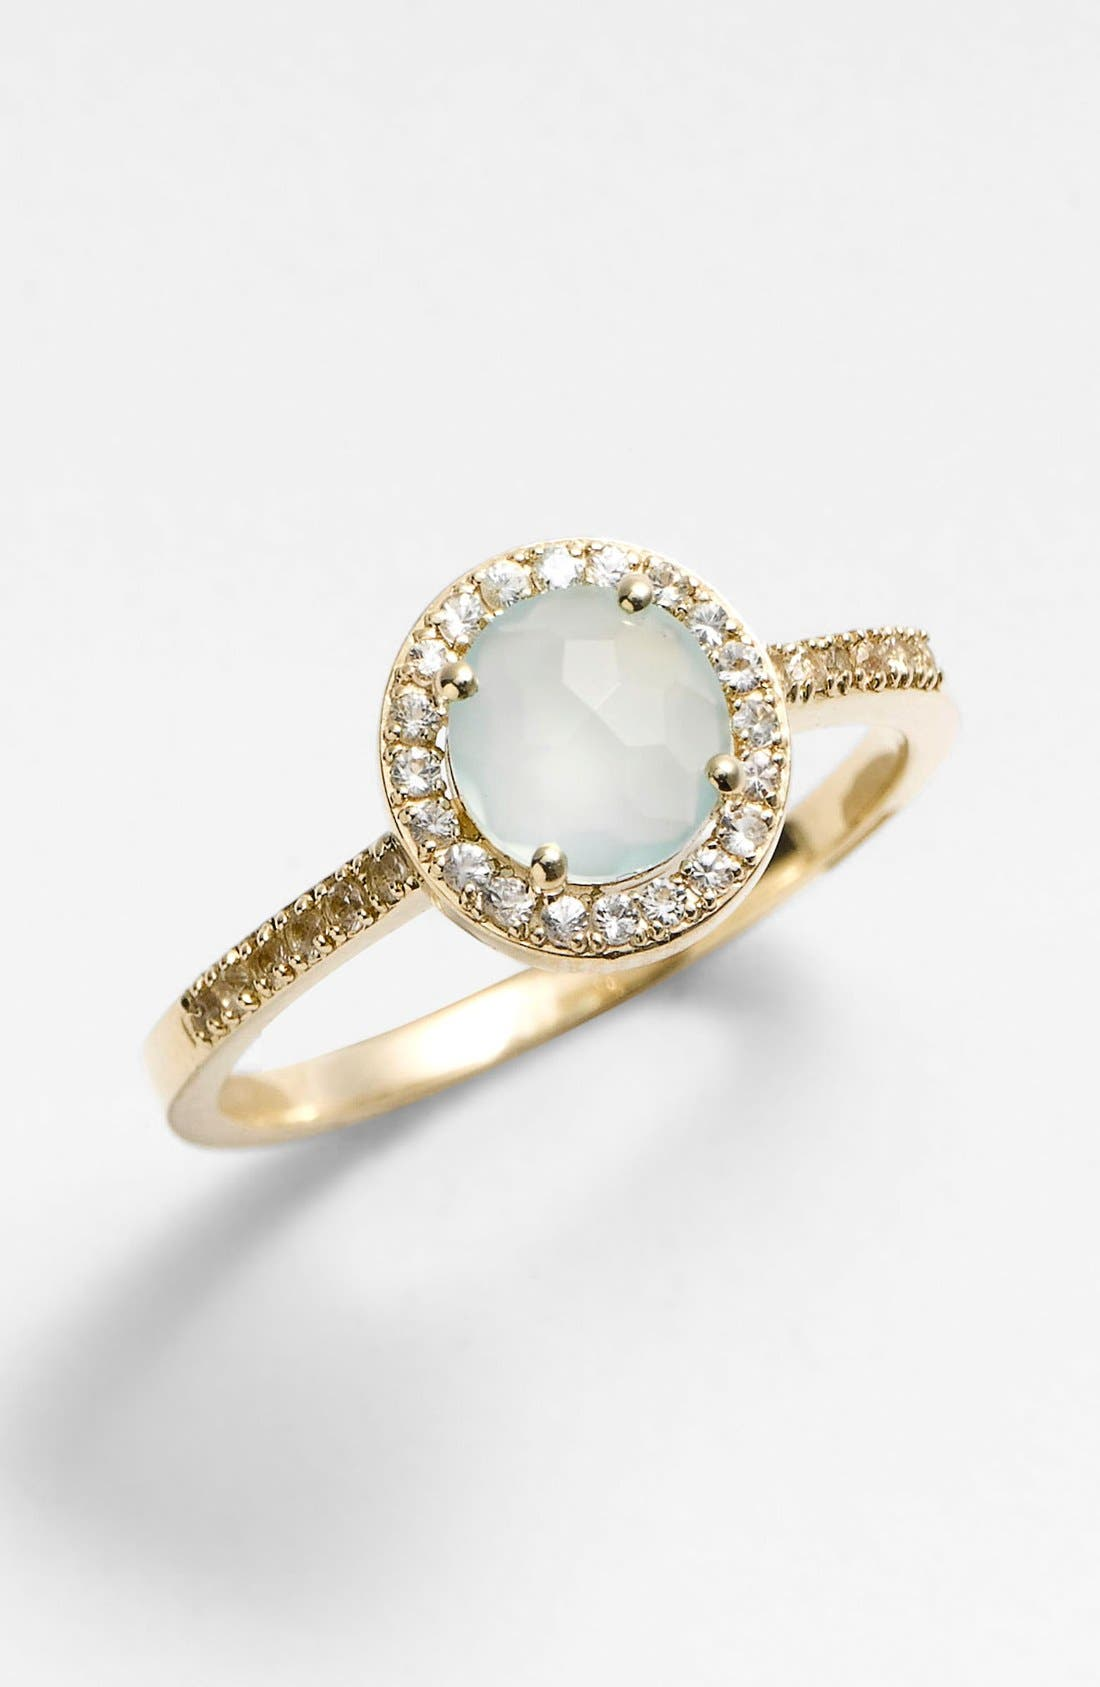 Alternate Image 1 Selected - KALAN by Suzanne Kalan Round Bezel Ring